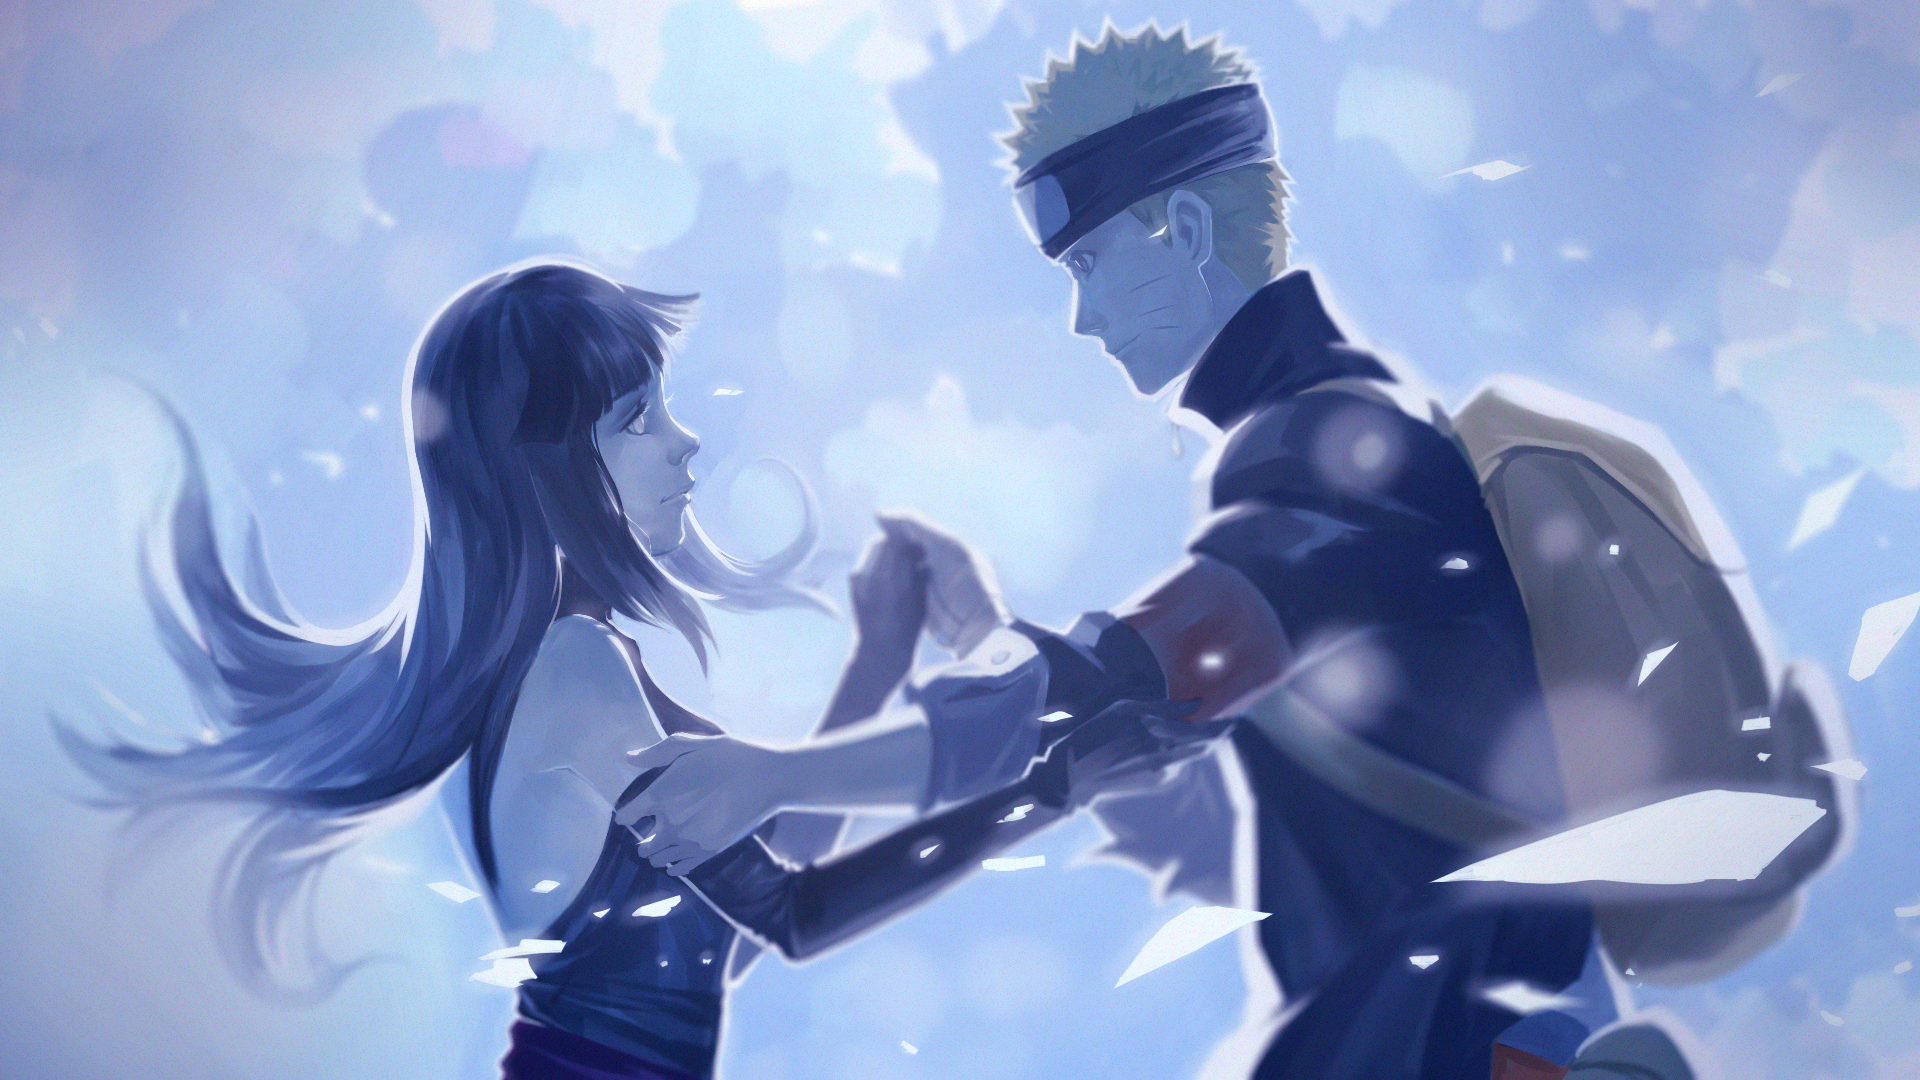 Naruto Hd Wallpaper Naruto Hinata The Last HD